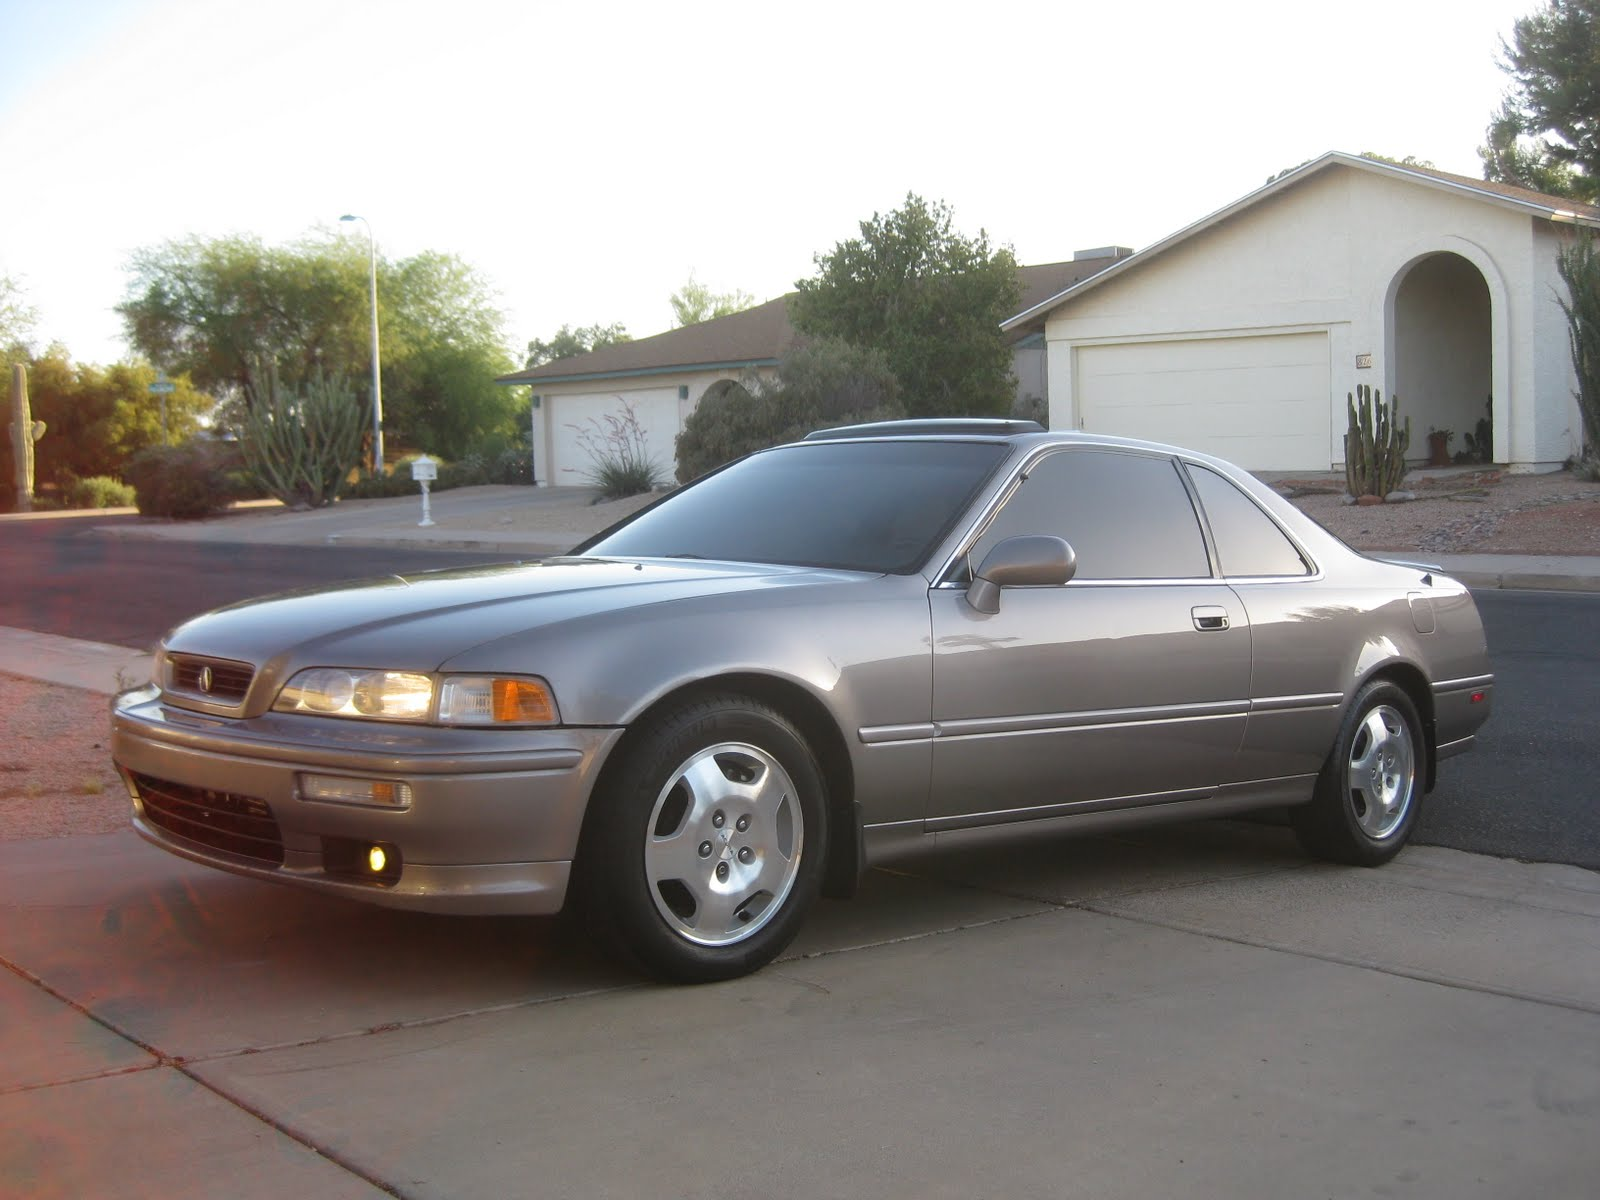 1994 acura legend coupe tirekicker time machine launch modern car rh launchmoderncar blogspot com 1994 Acura Vigor Interior 1994 Acura Vigor Problems